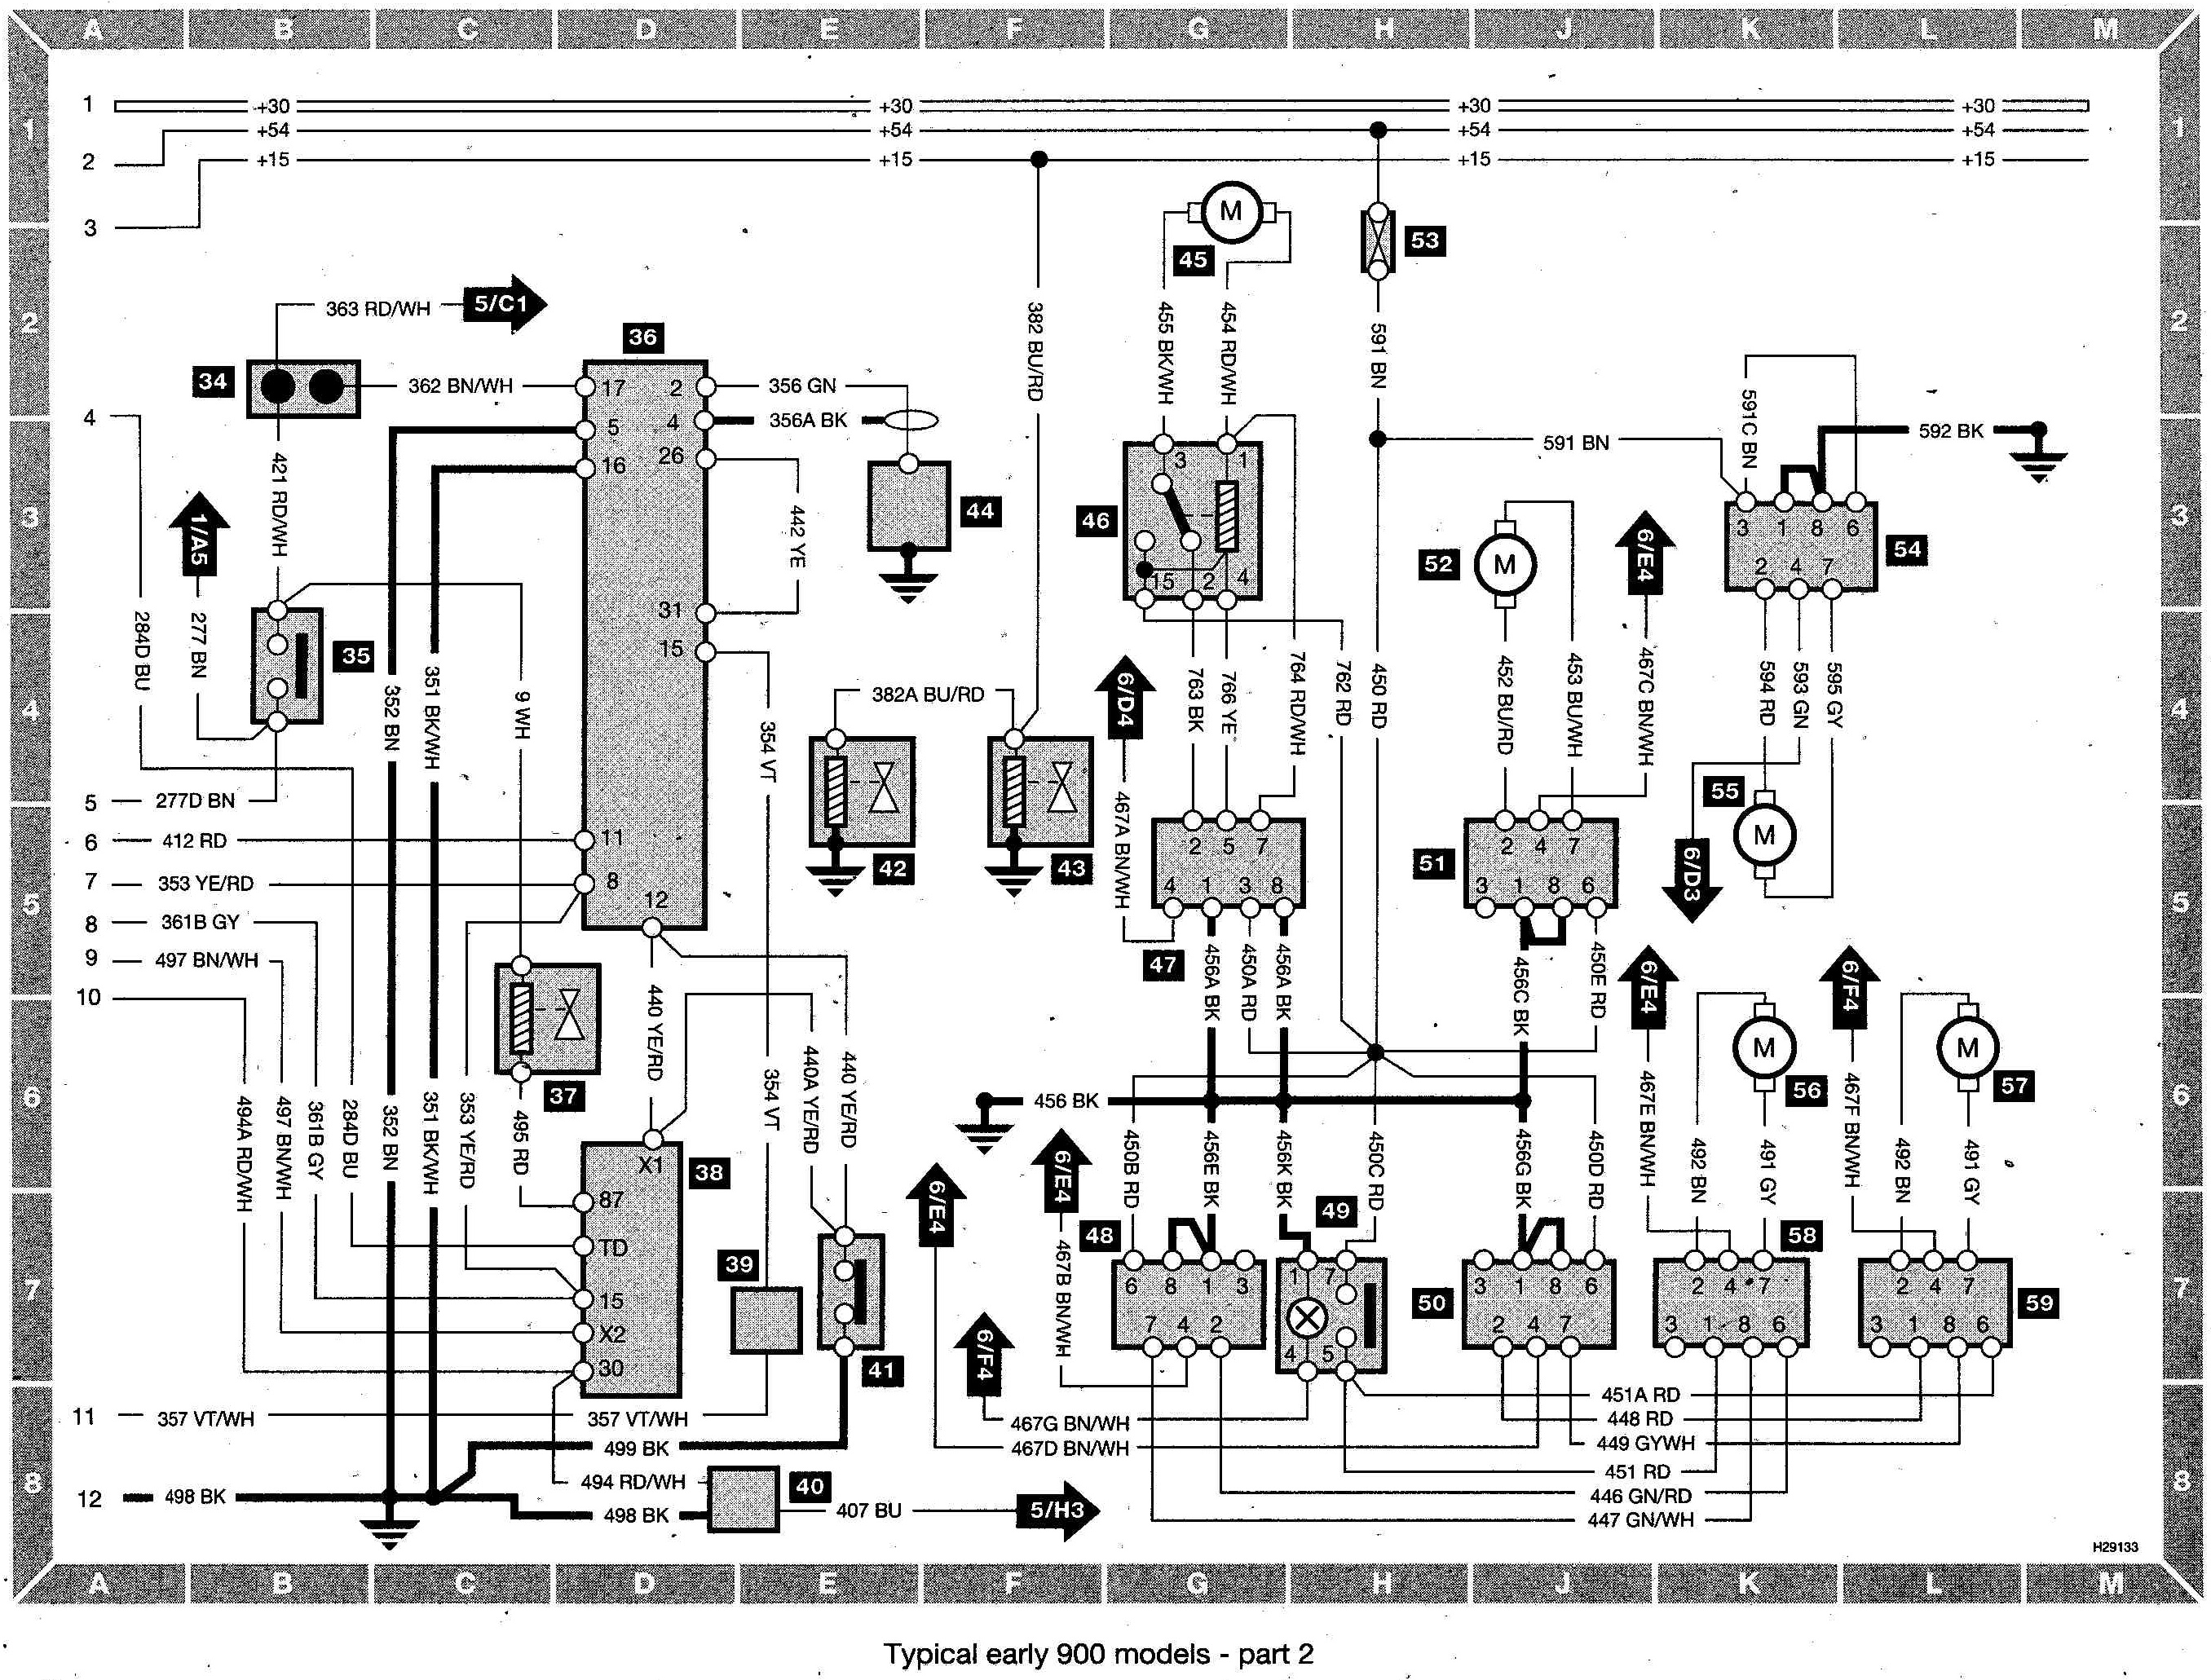 wiring diagram likewise saab 9 3 stereo wiring diagram on e30 m50